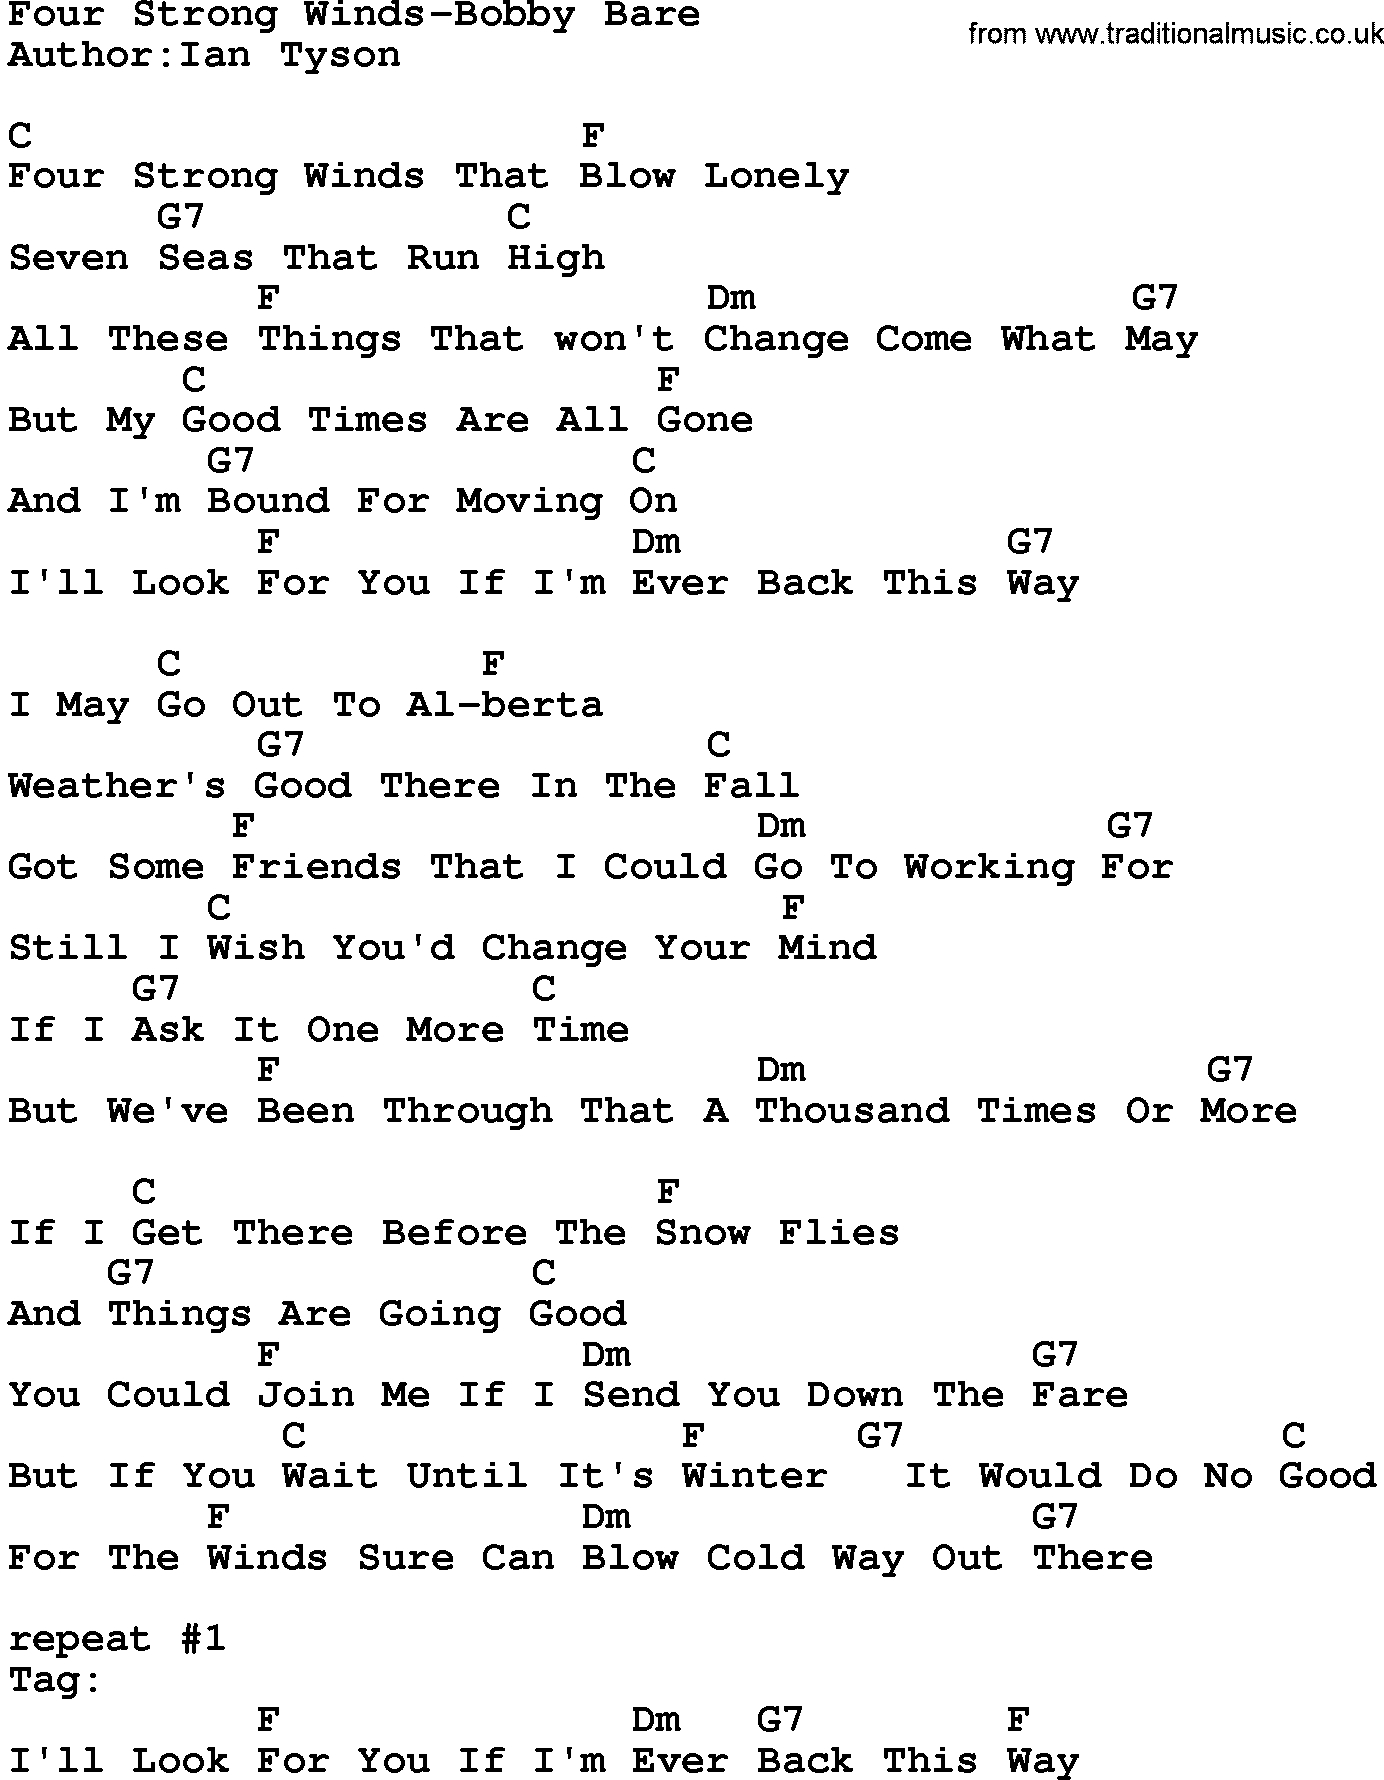 Dust In The Wind Chords Country Musicfour Strong Winds Bob Bare Lyrics And Chords